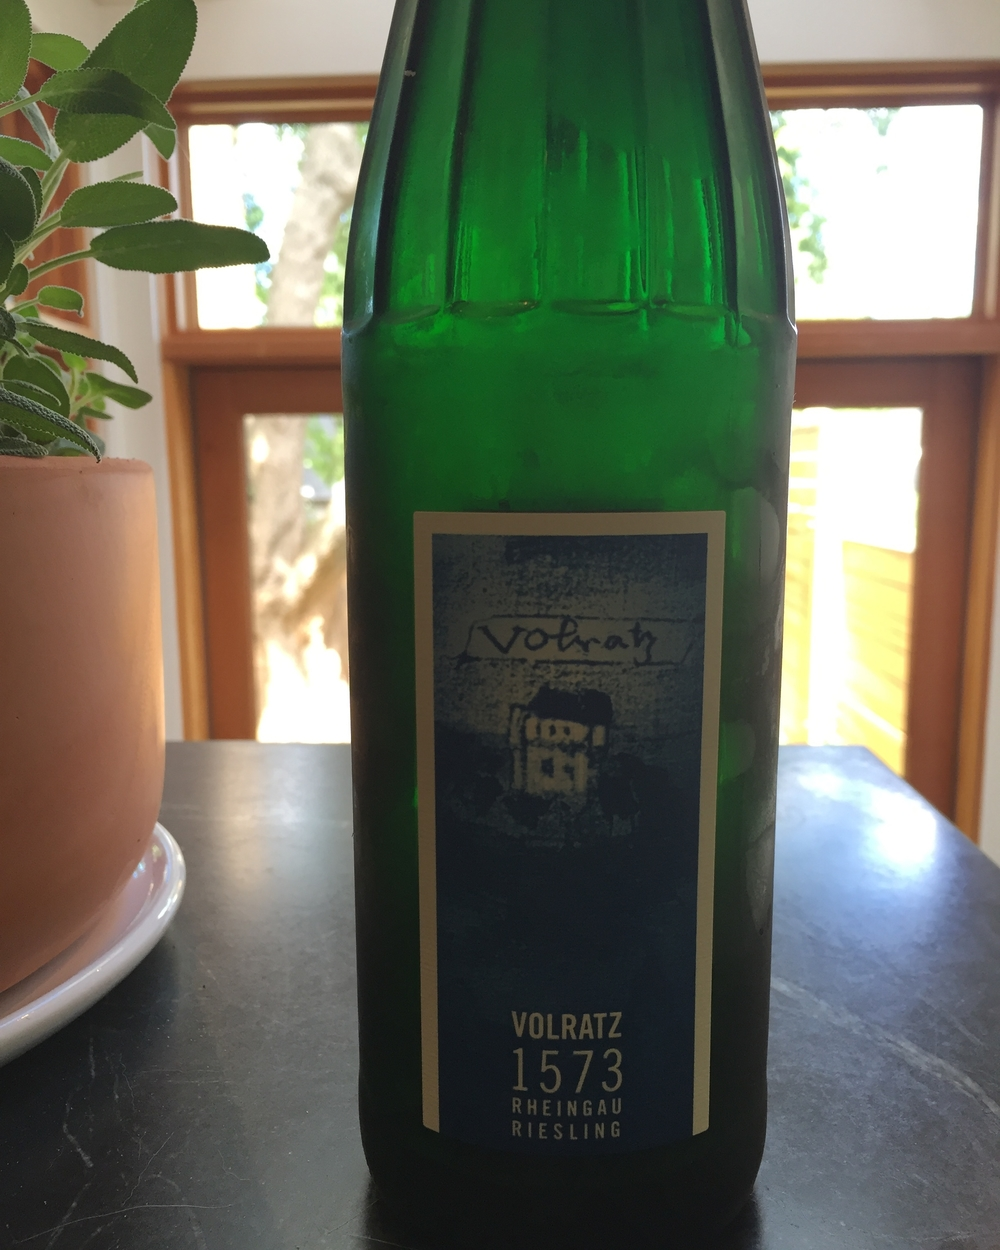 Schloss Vollrads Volratz 1573 Riesling 2013 review